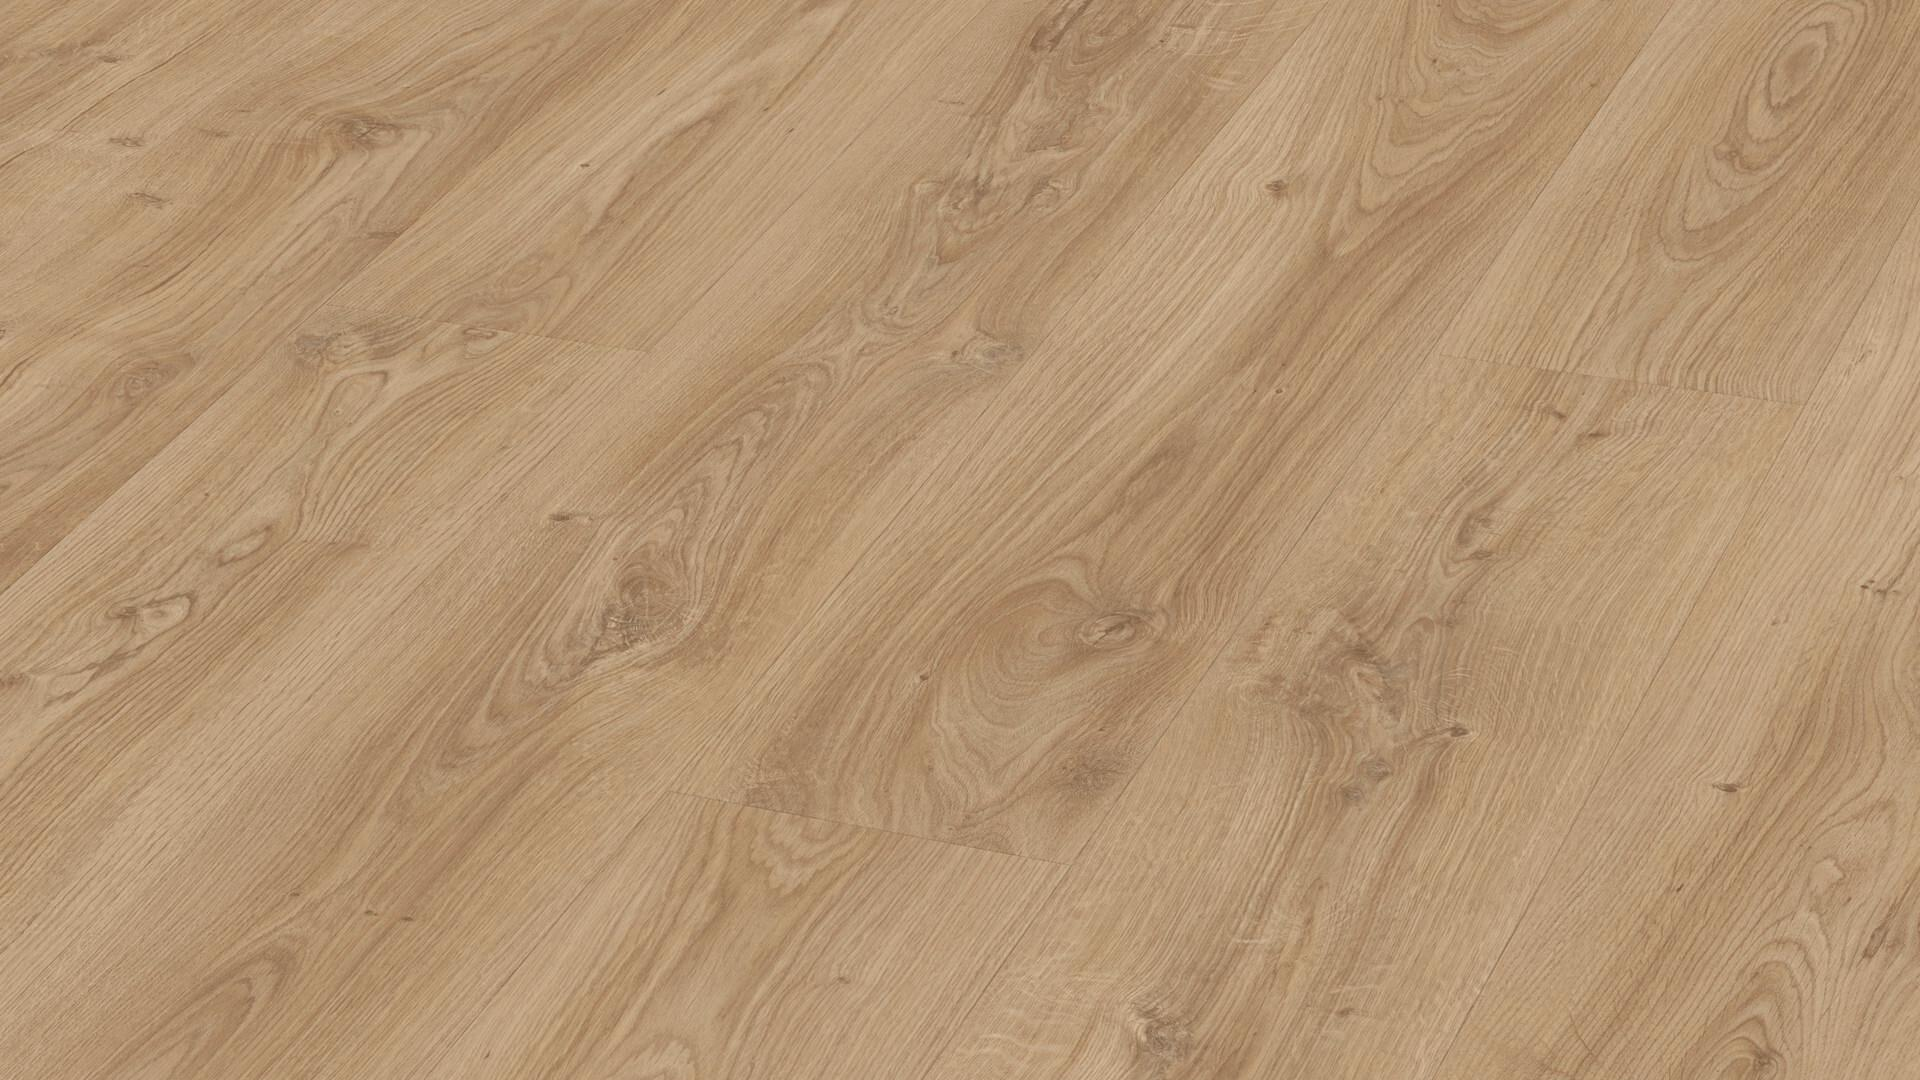 Design flooring MeisterDesign. flex DL 400 Light castle oak 6841